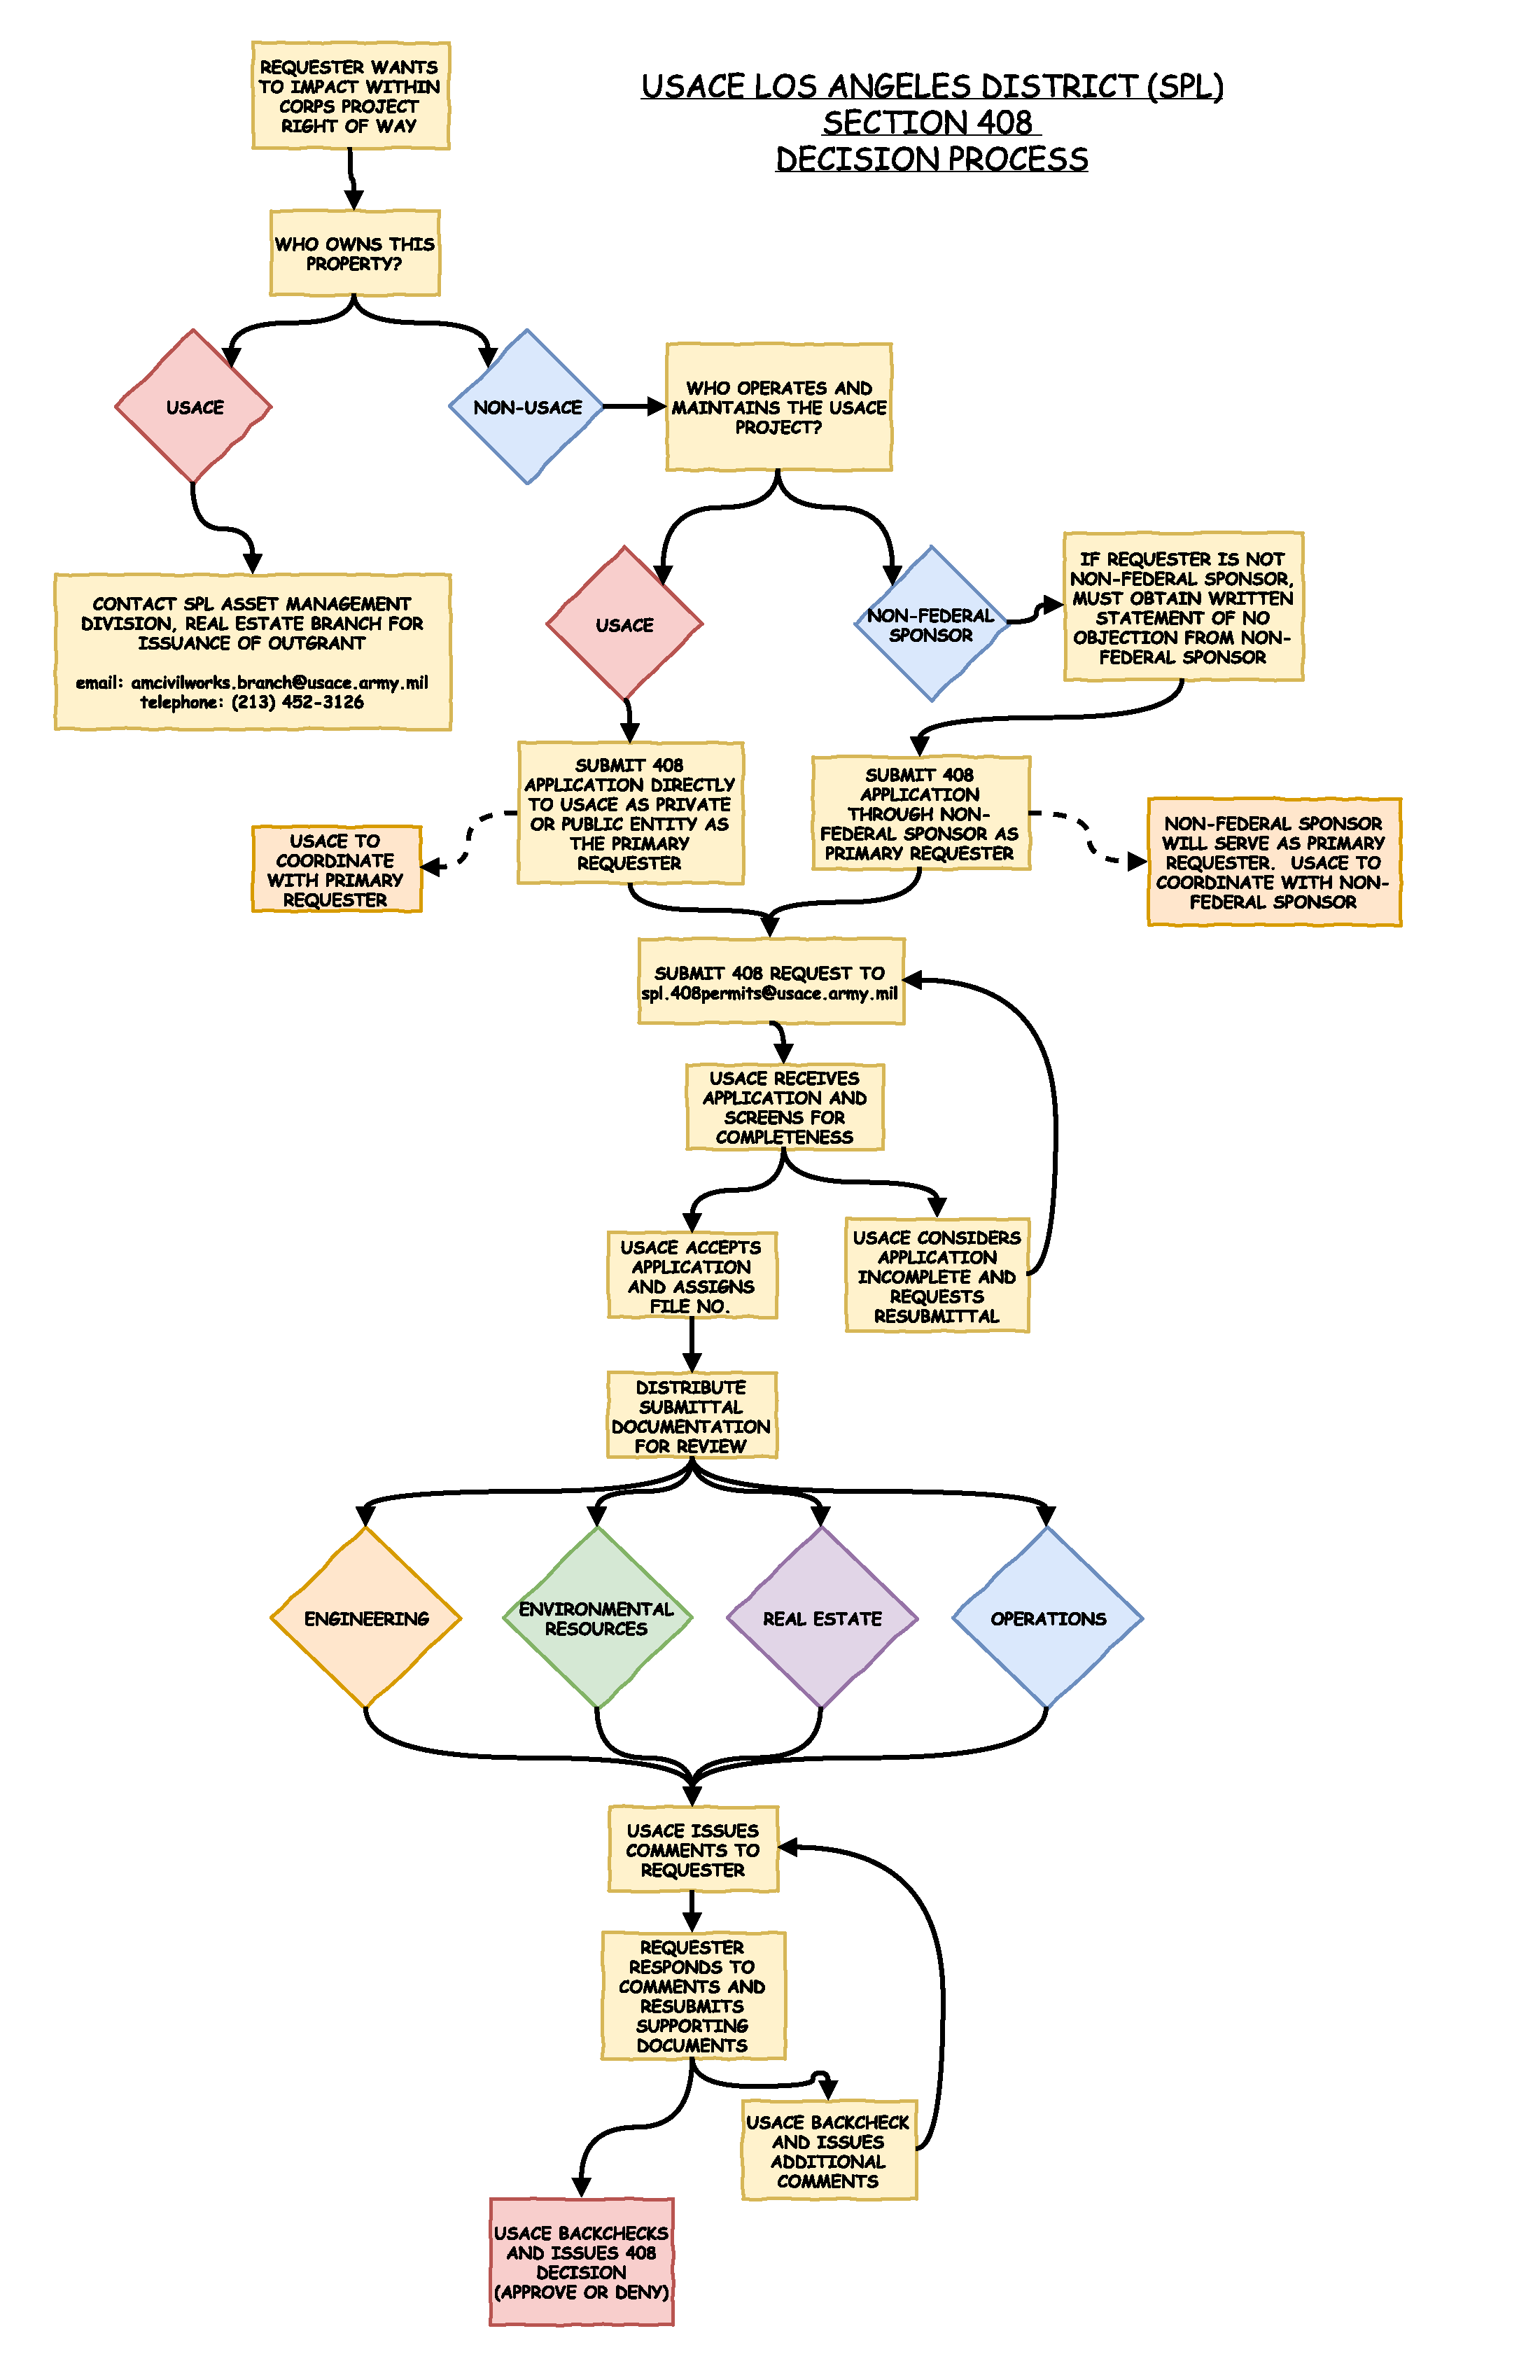 Section 408 Decision Process Flow Chart